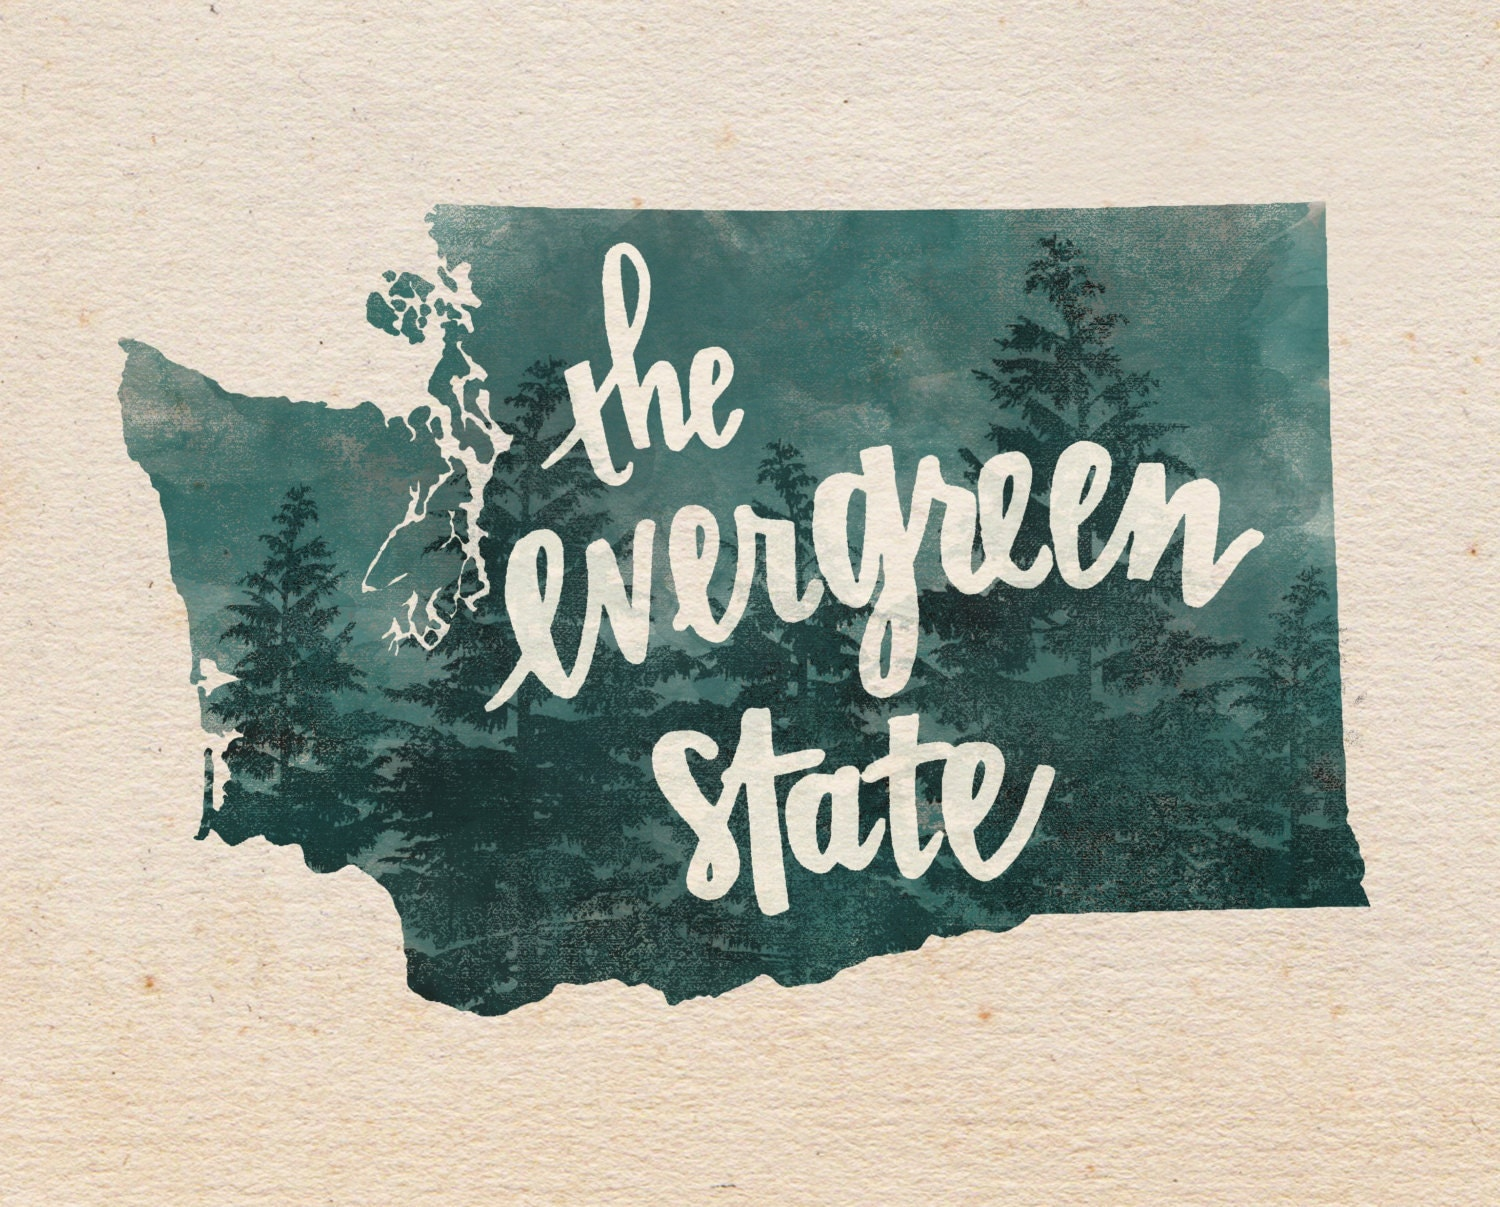 Washington Evergreen State Hand Lettering Digital Print